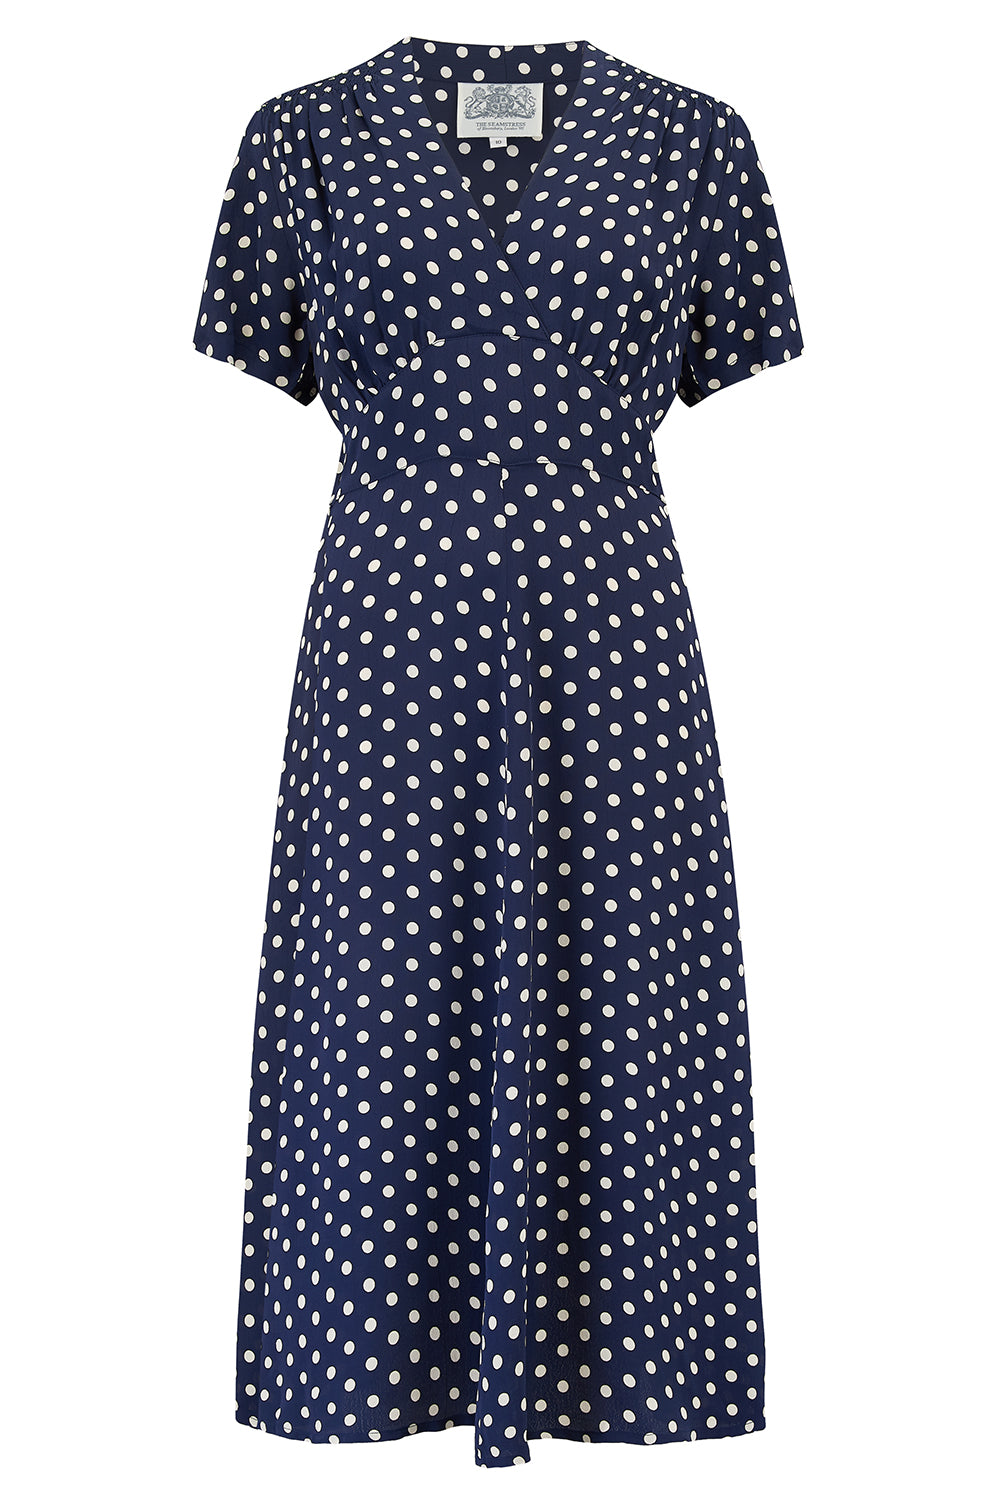 "The Seamstress Of Bloomsbury ""Dolores"" Swing Dress in Navy Spot, Classic 1940s Inspired Vintage Style - RocknRomance Clothing"